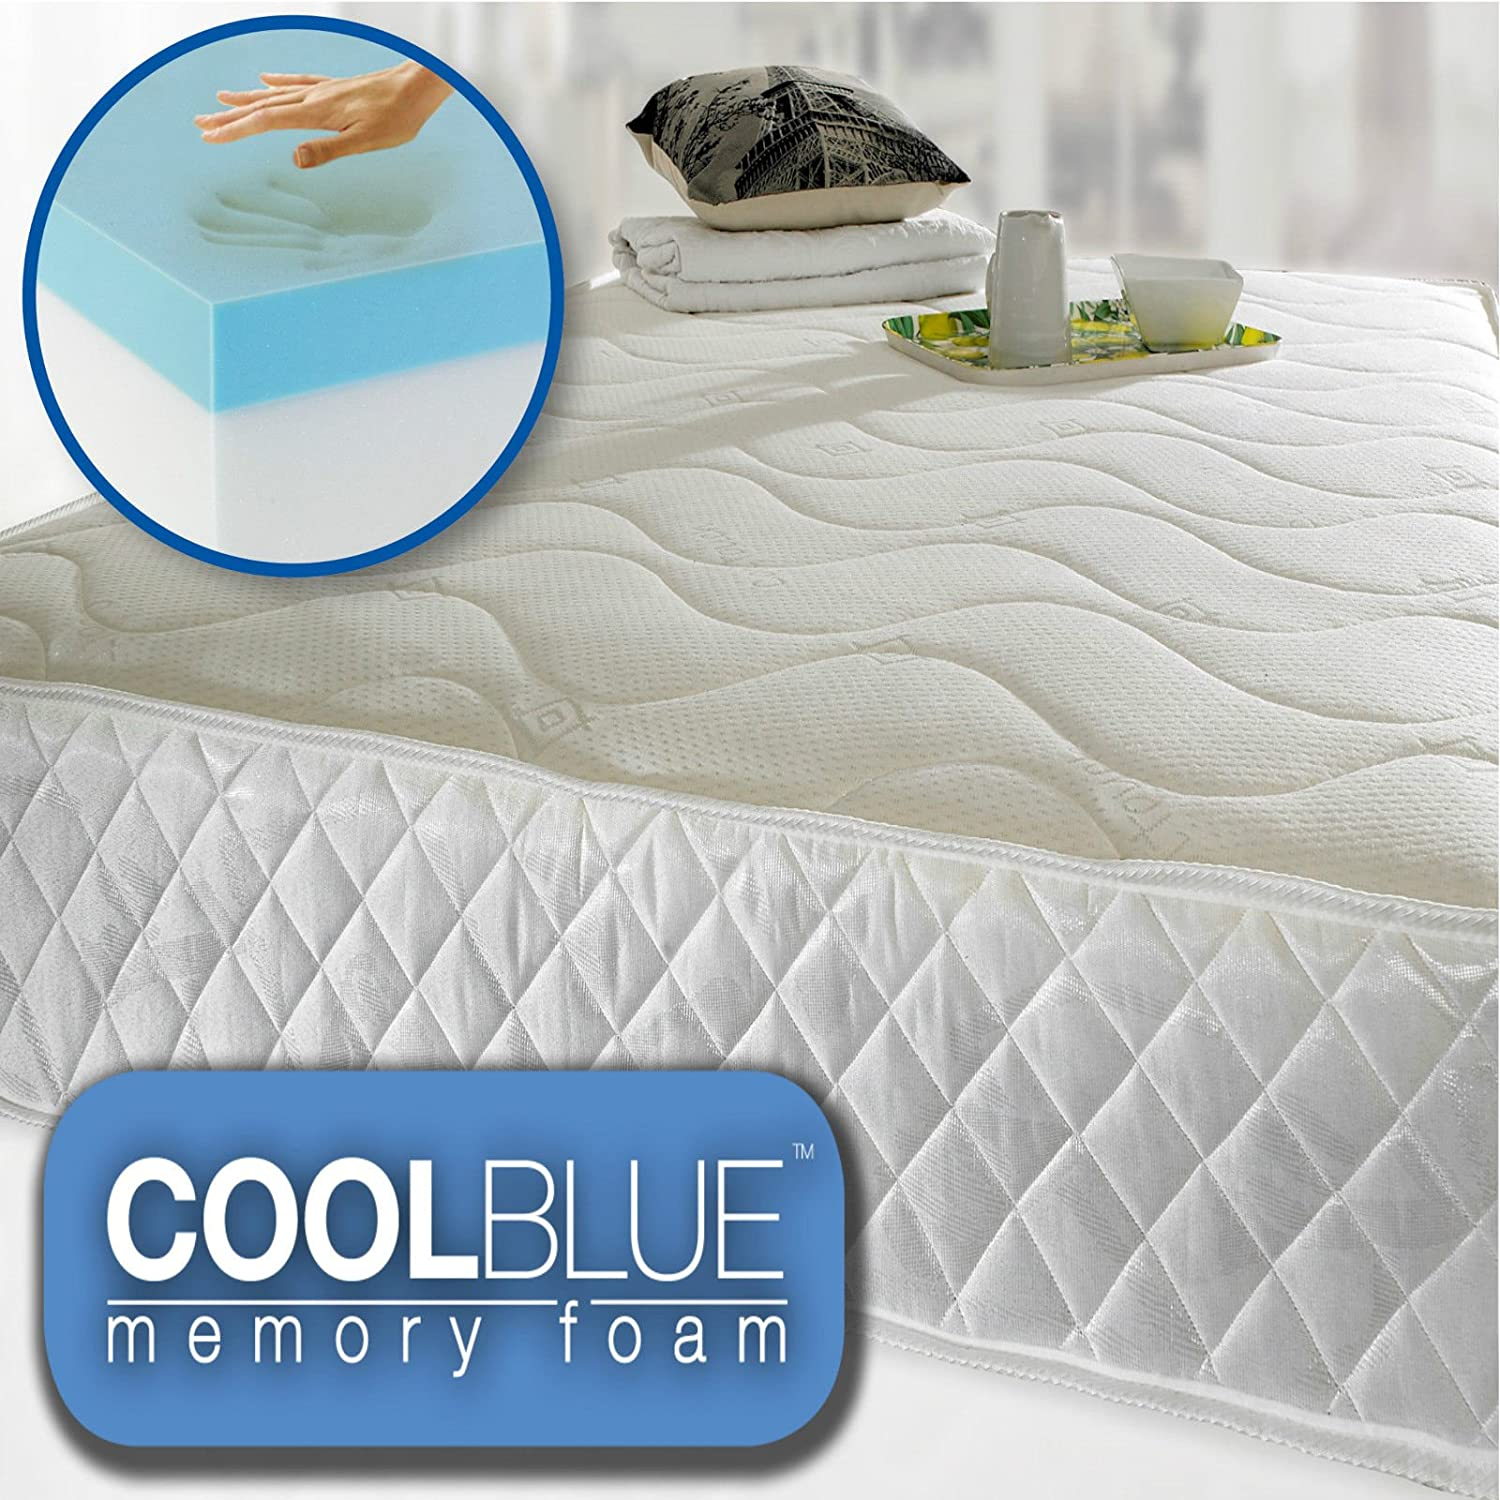 6ebee6bae3ec Cool Blue Memory Foam Open Coil Mattress Luxury Quilted 4ft6 Double Size   Energy Class A+++